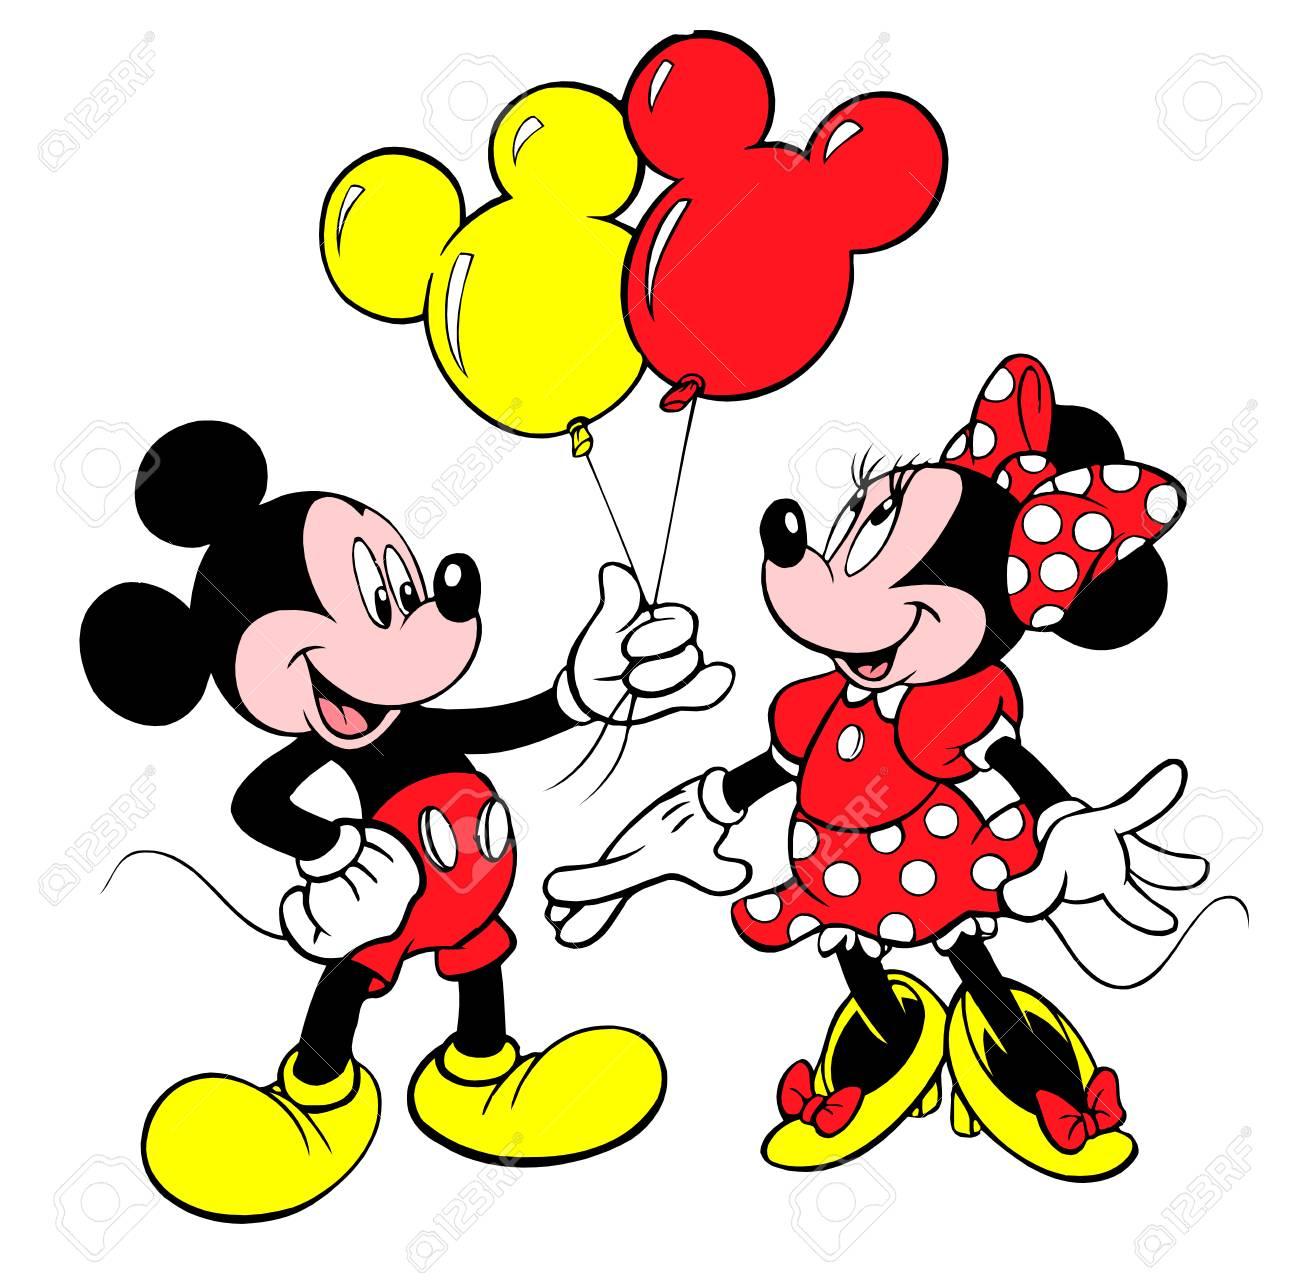 Minnie Mouse Red Tie Mickey Mouse Balloons Gift Stock Photo Picture